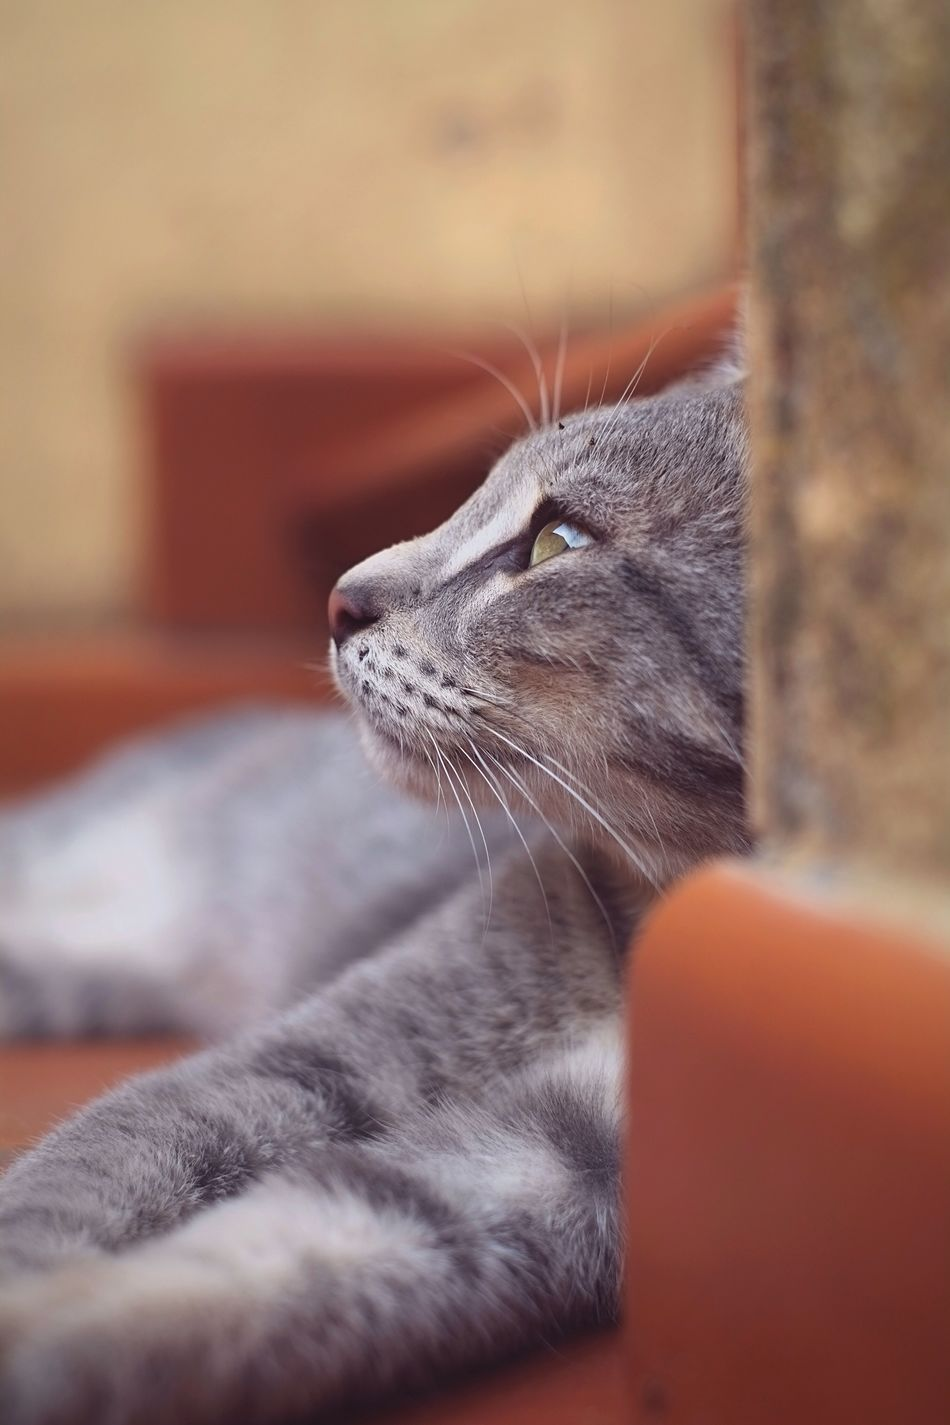 Lost in your eyes Shycapture Pet Animal Themes One Animal Feline Close-up Selective Focus Cat Gray Animal Eye Lookingup Domestic Animals Nature Animal Head  Soul Animals Portrait Portrait Of A Cat